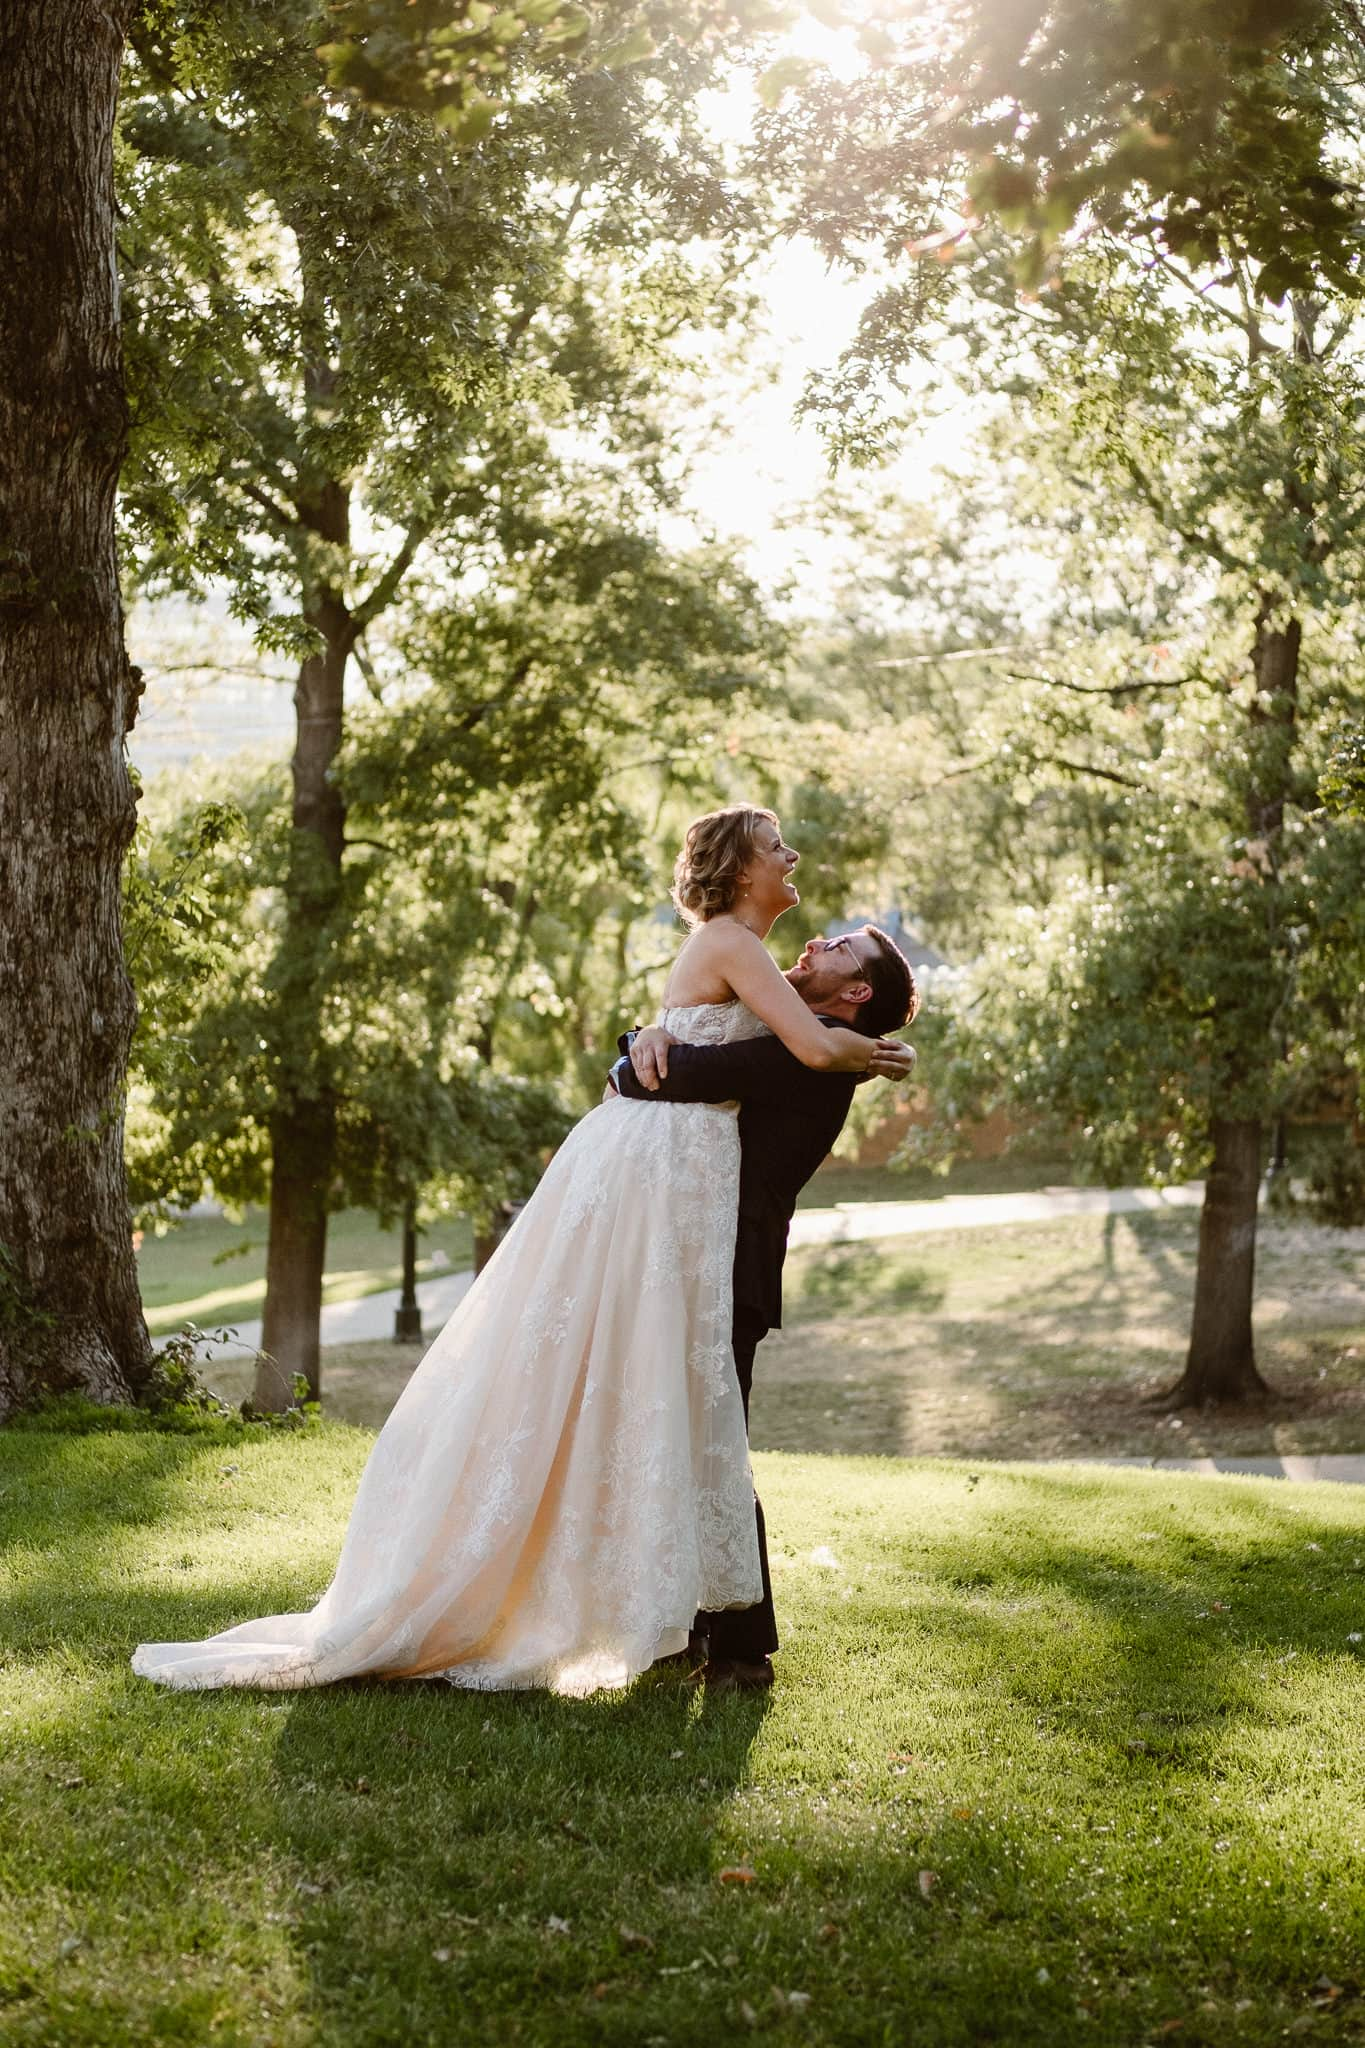 Grant Humphreys Mansion Wedding Photographer, Denver wedding photographer, Colorado wedding photographer, bride and groom portraits, golden hour wedding photos